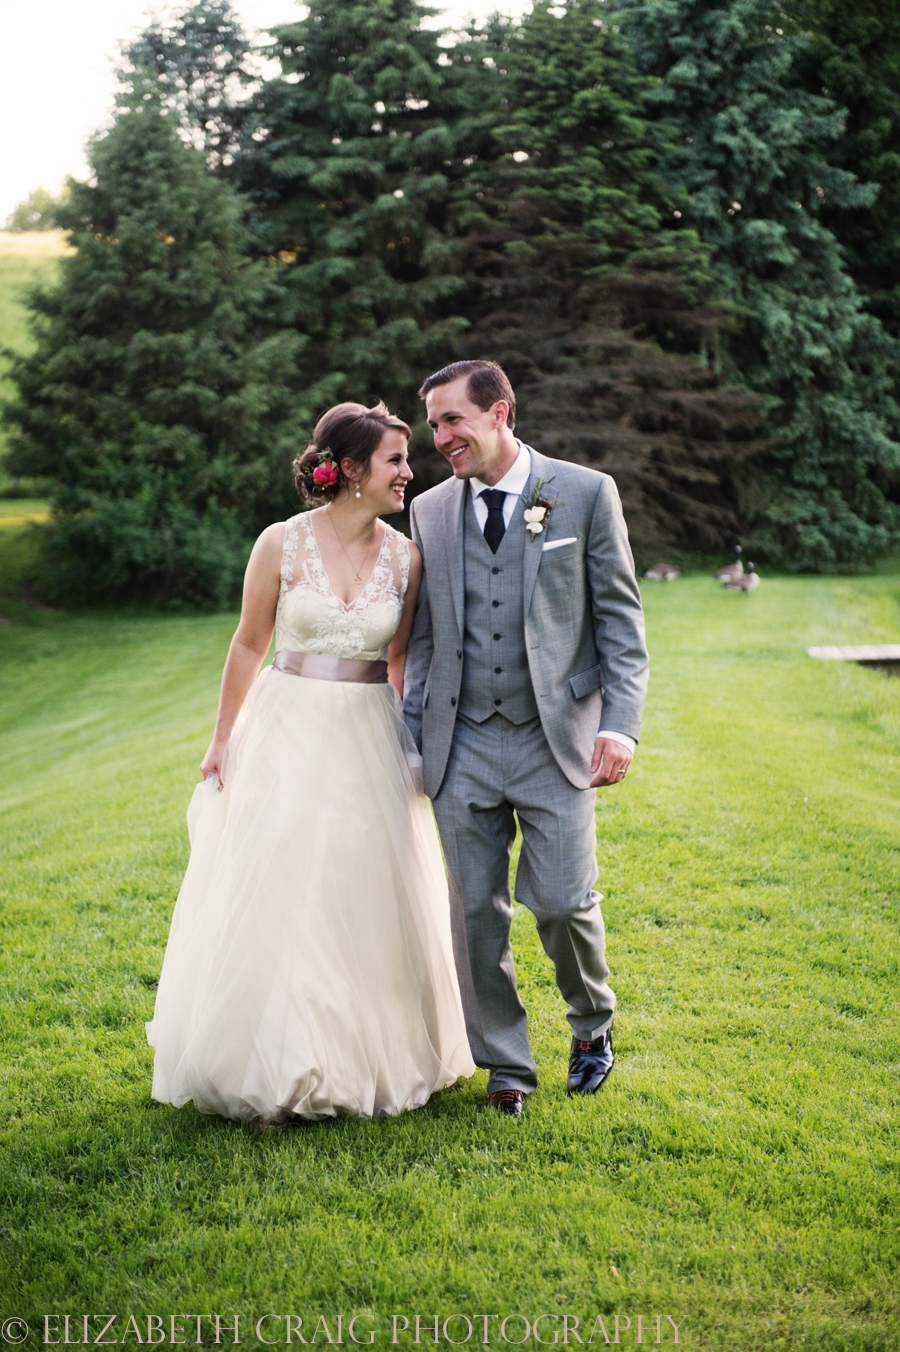 Shady Elms Farm Weddings and Receptions Elizabeth Craig Photography-0149